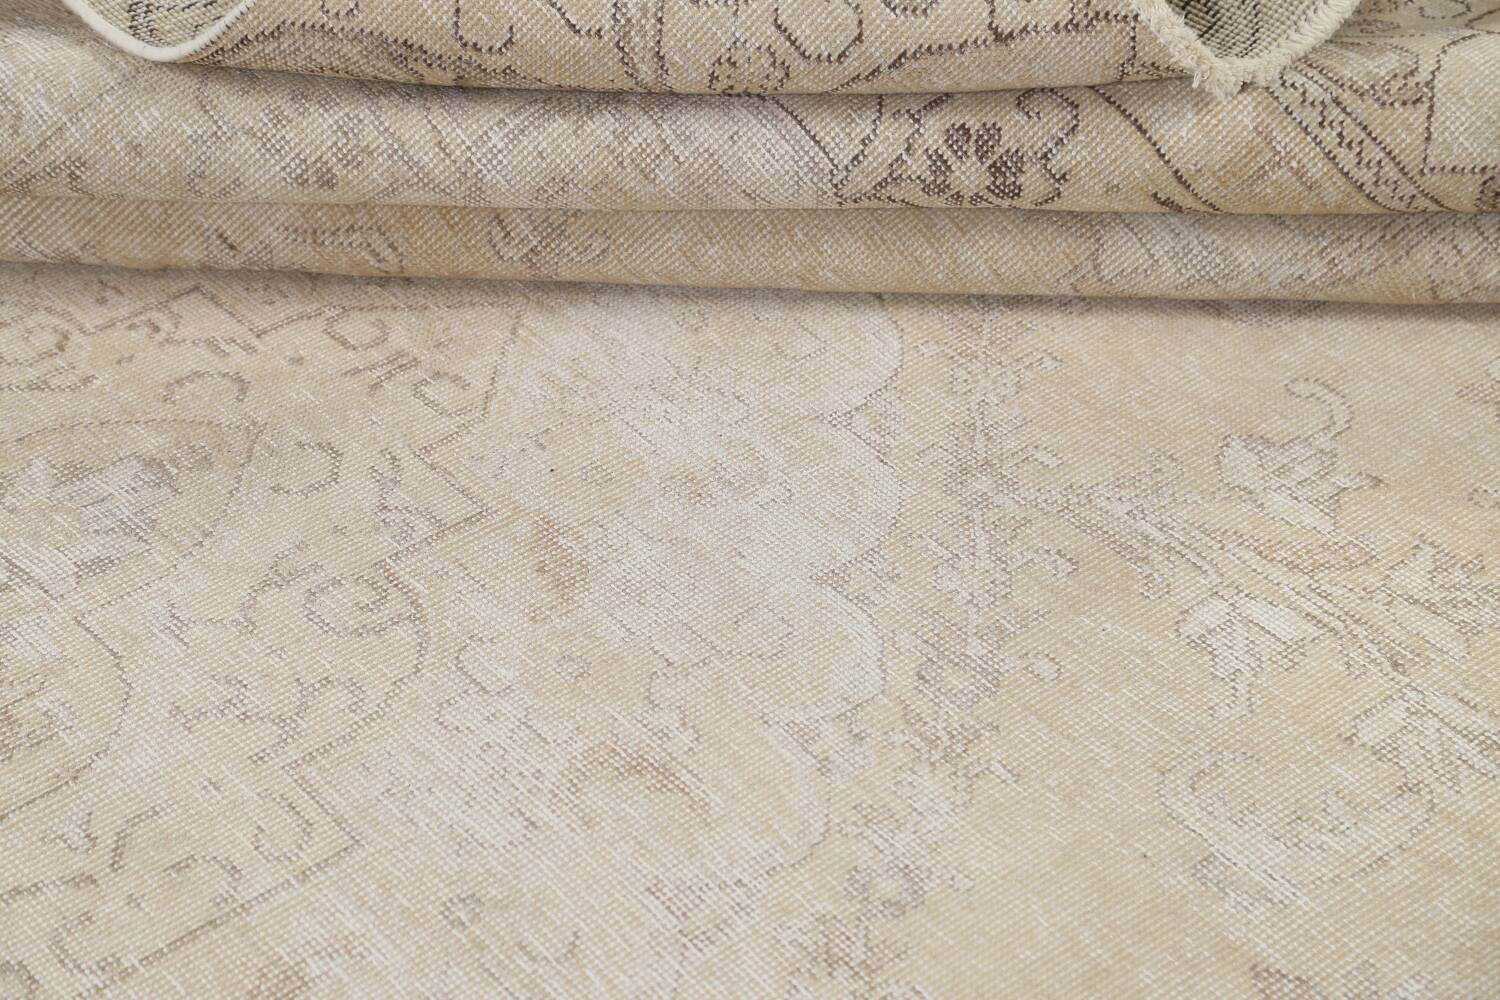 Muted Distressed Tabriz Persian Area Rug 9x12 image 20